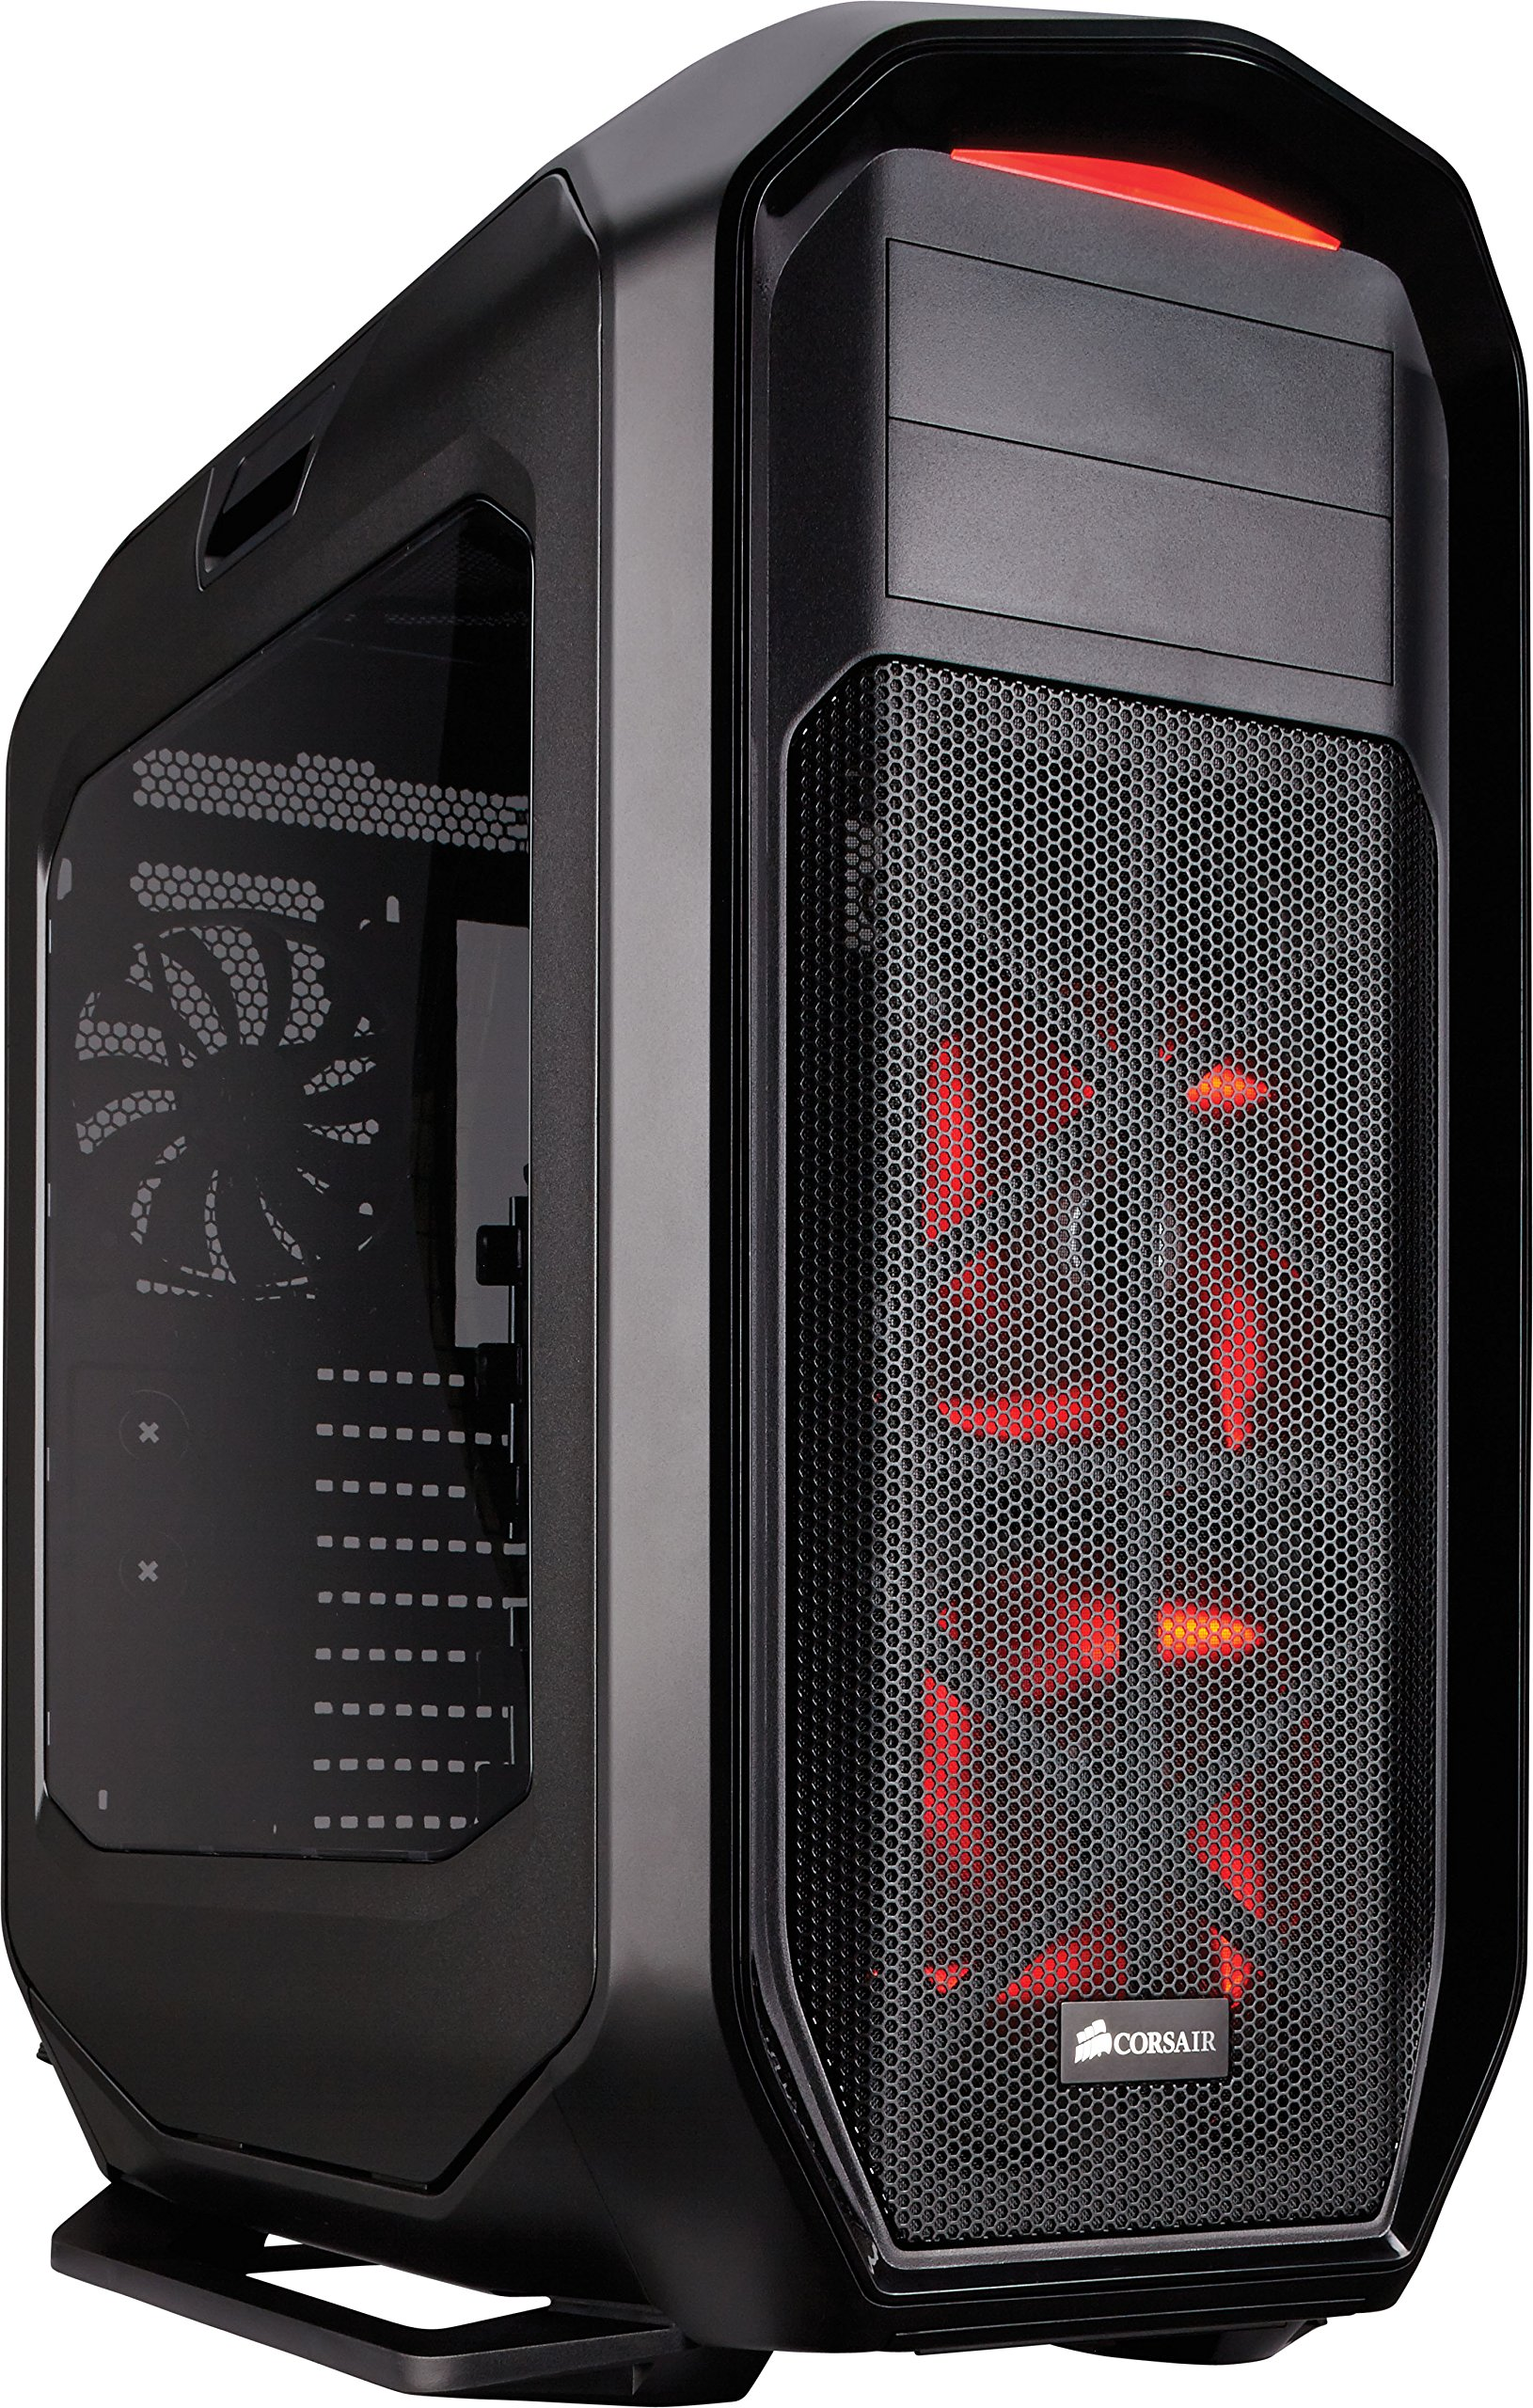 Corsair Graphite Series 780T Full Tower PC Case - Black